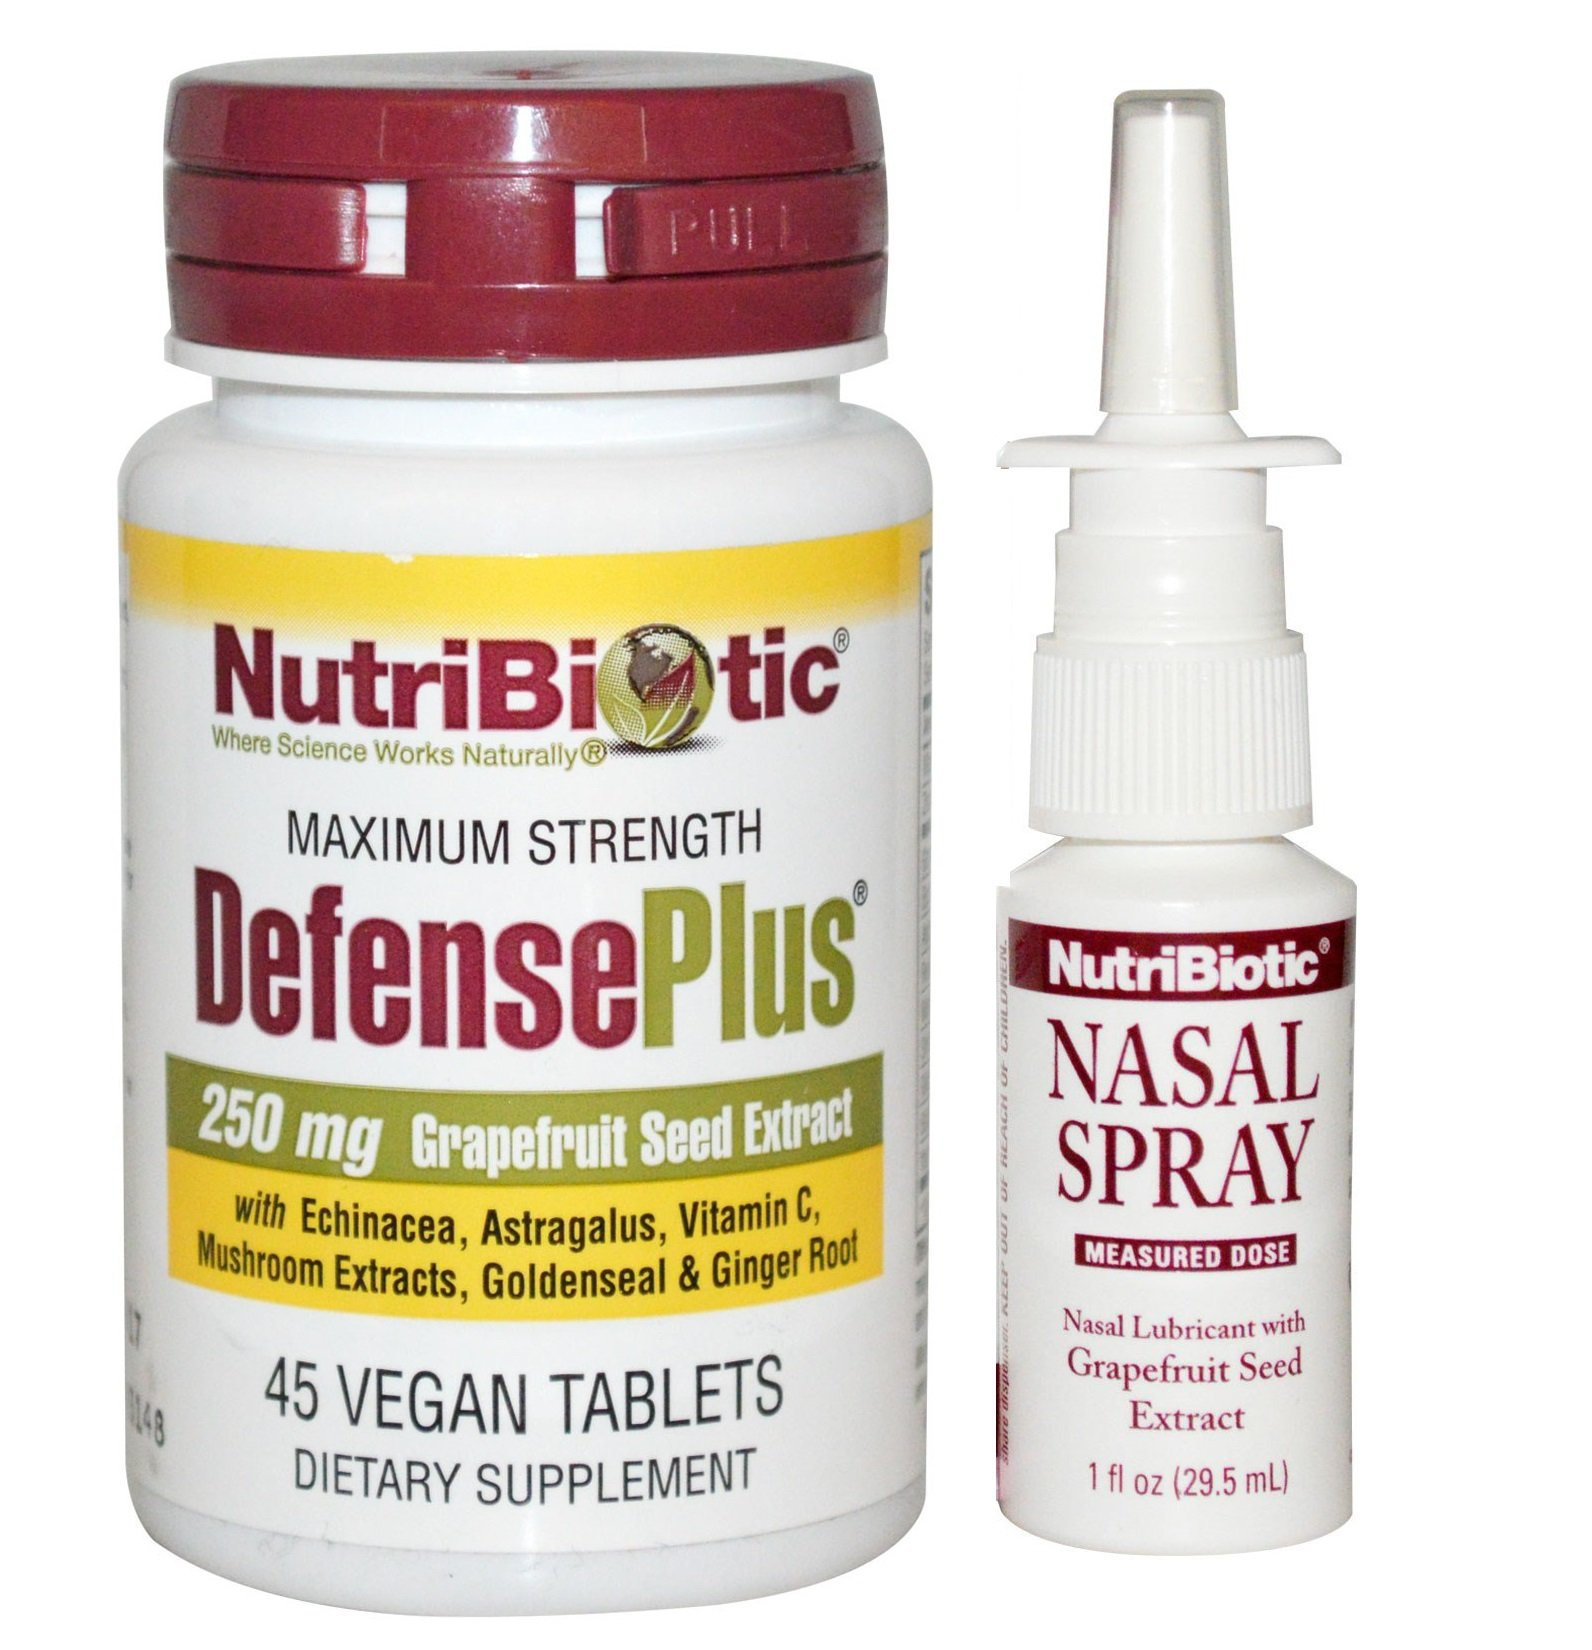 NutriBiotic Defense Plus and Nasal Spray Bundle with Ginger Root Extract, Maitake Mushroom, Grapefruit Seed Extract and Sodium Bicarbonate, 45 ct and 1 fl. oz. each